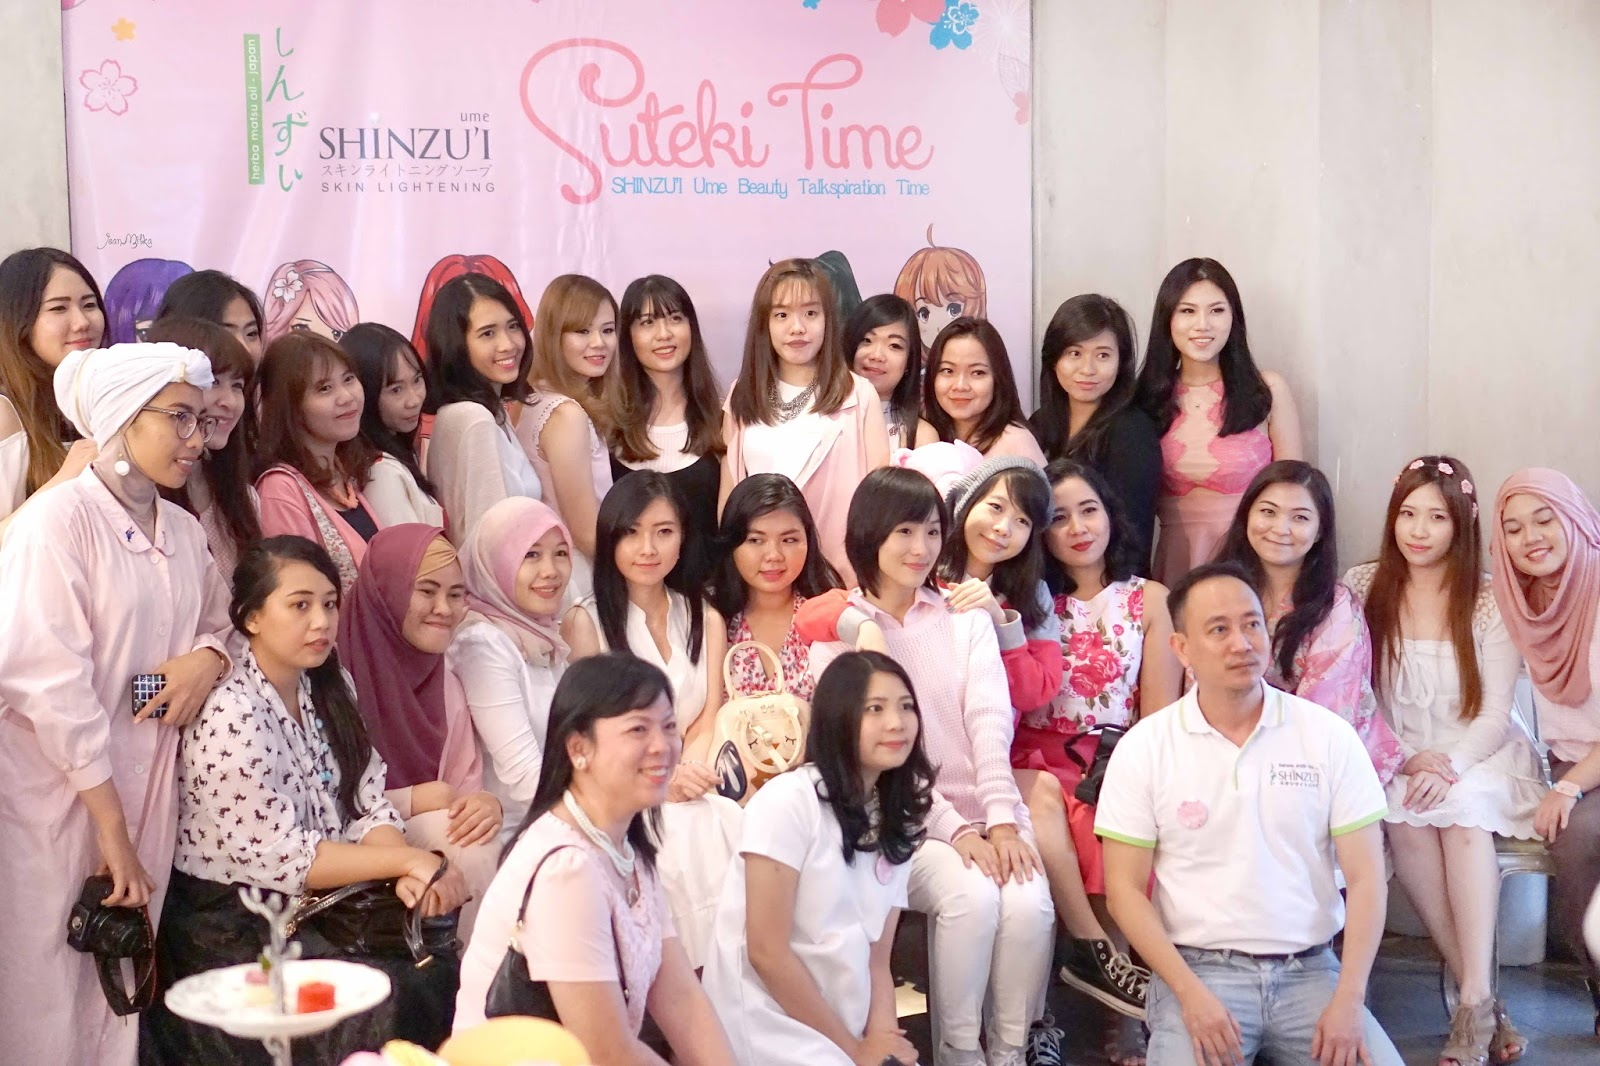 blogger gathering, beauty blogger indonesia. beauty blogger, jean milka, jeanmilka, shinzui, shinzui ume, blogger gathering jakarta, kawaii beauty japan, event with jean milka, indonesian beauty blogger